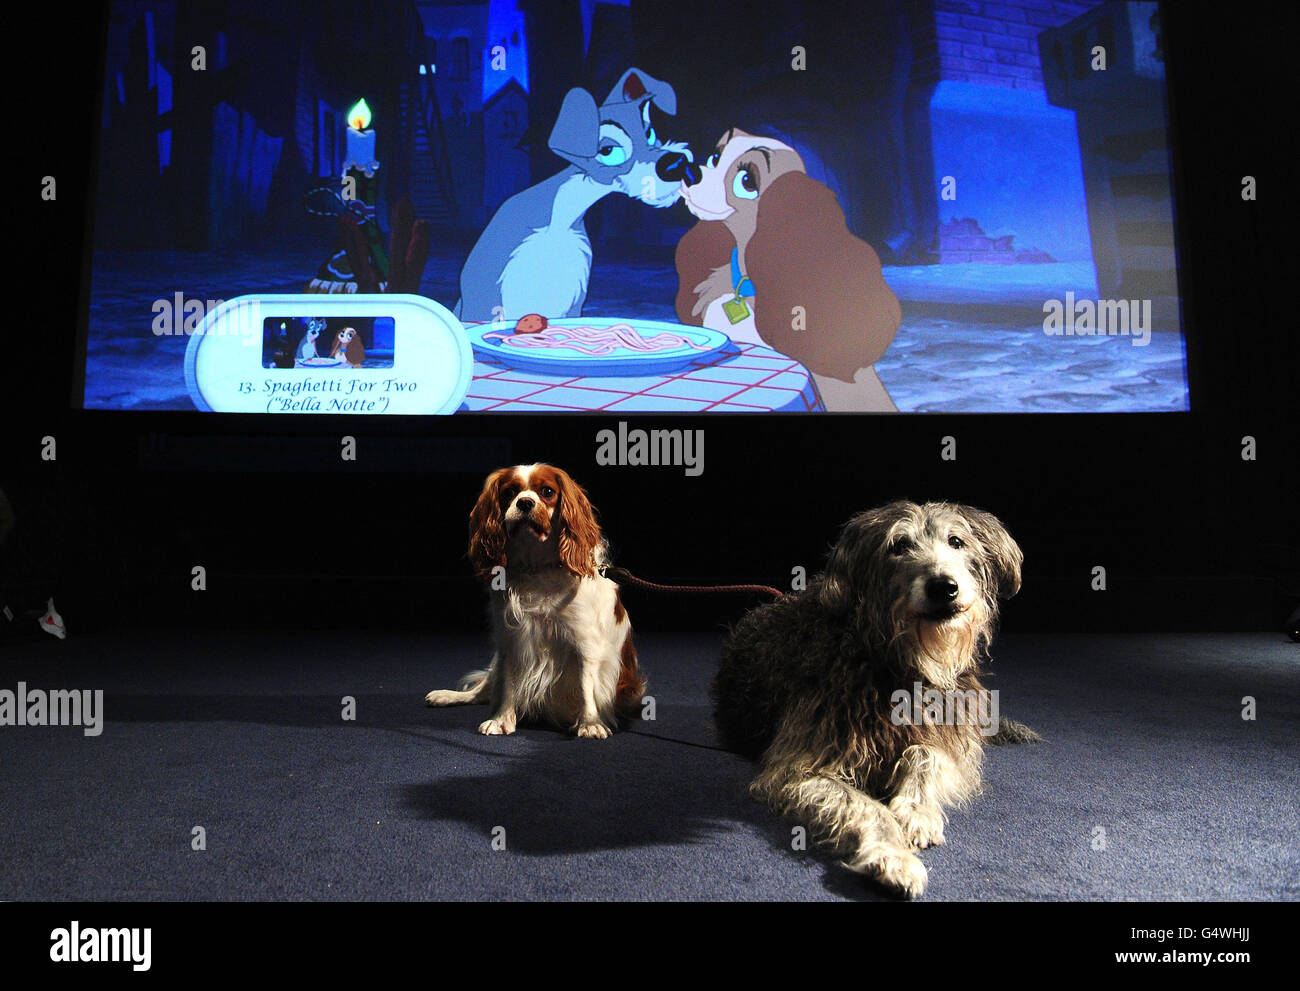 The Lady And The Tramp Disney High Resolution Stock Photography And Images Alamy